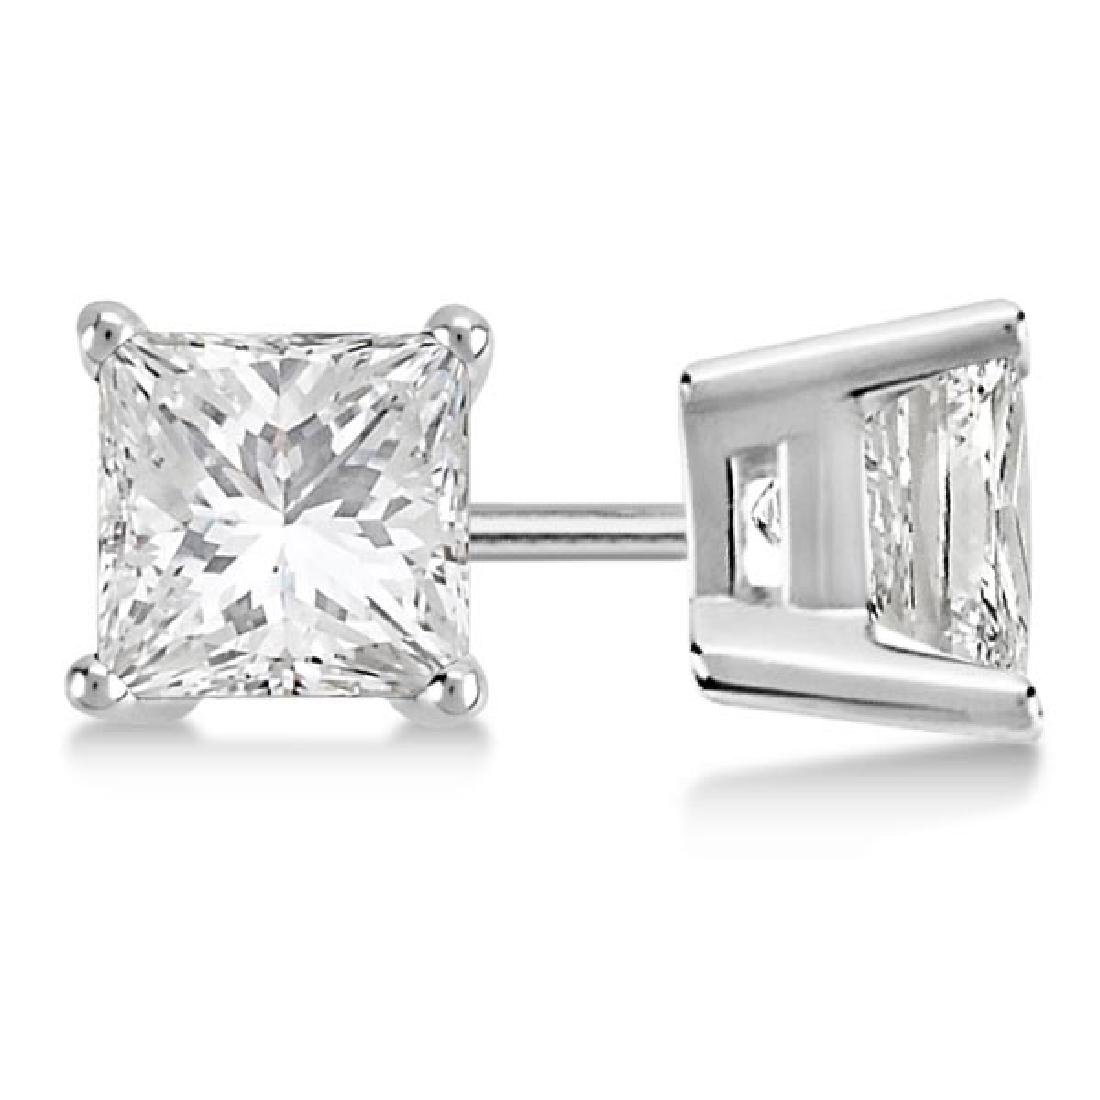 Certified 1.05 CTW Princess Diamond Stud Earrings E/SI2